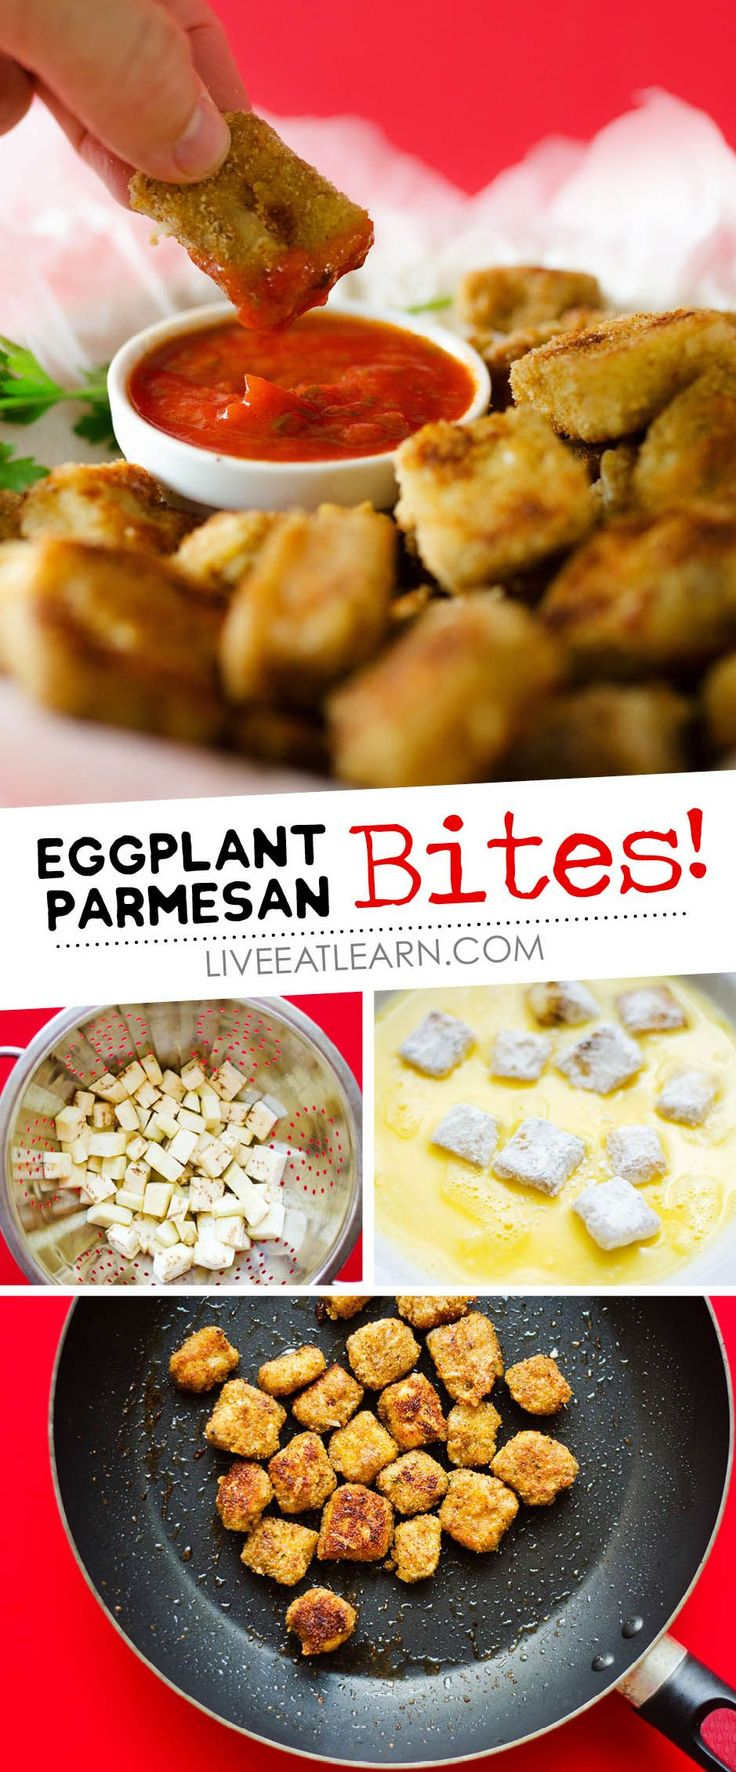 These Eggplant Parmesan Poppers recipe make a healthy appetizer that's easy and tasty! Perfect as a family-friendly vegetarian snack, starter, or main dish! // Live Eat Learn (Top View Healthy Recipes)